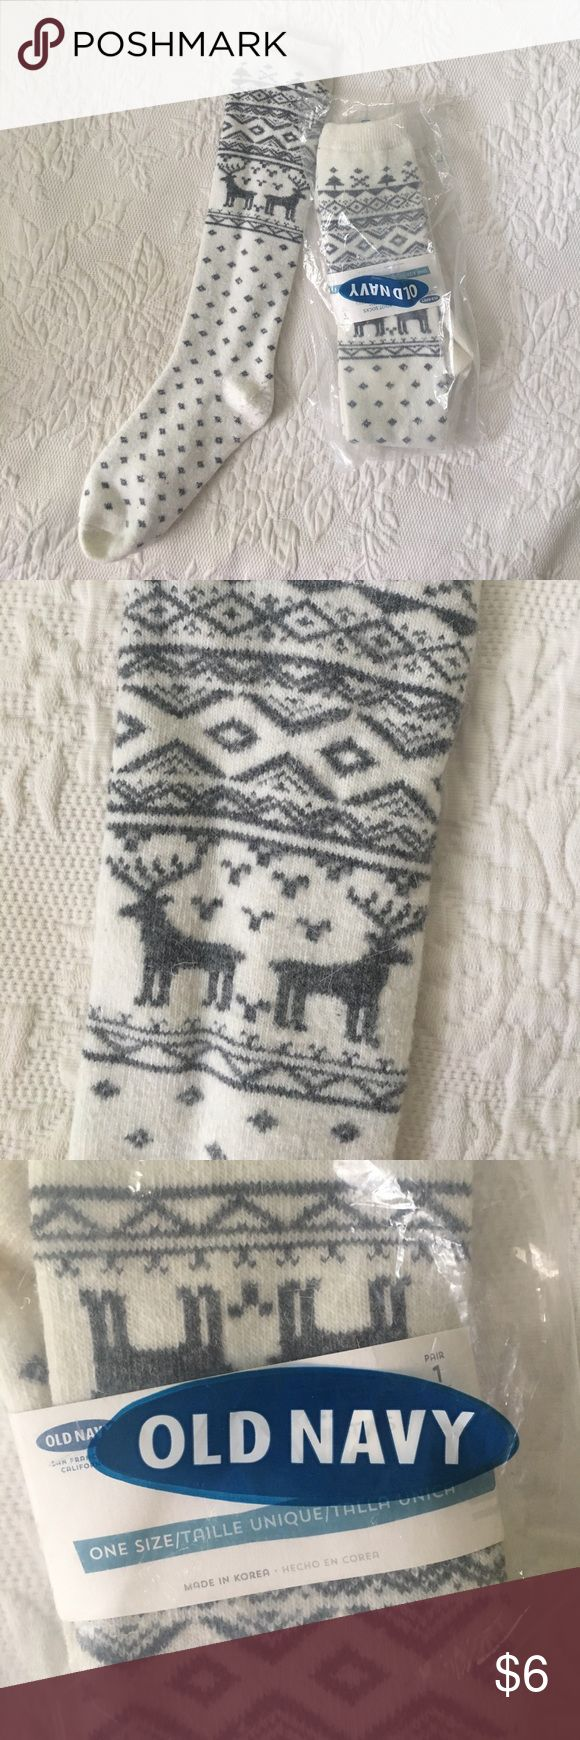 Old Navy Fair Isle boot socks These brand new with tags boot socks are ivory with a gray fair isle reindeer pattern. They are so cozy under boots in the winter or to keep your legs warm when you're lounging at home. (Photo of unwrapped sock is not the actual item being sold but shown for representation. Each pair offered for sale is new and never been removed from the package). Old Navy Accessories Hosiery & Socks